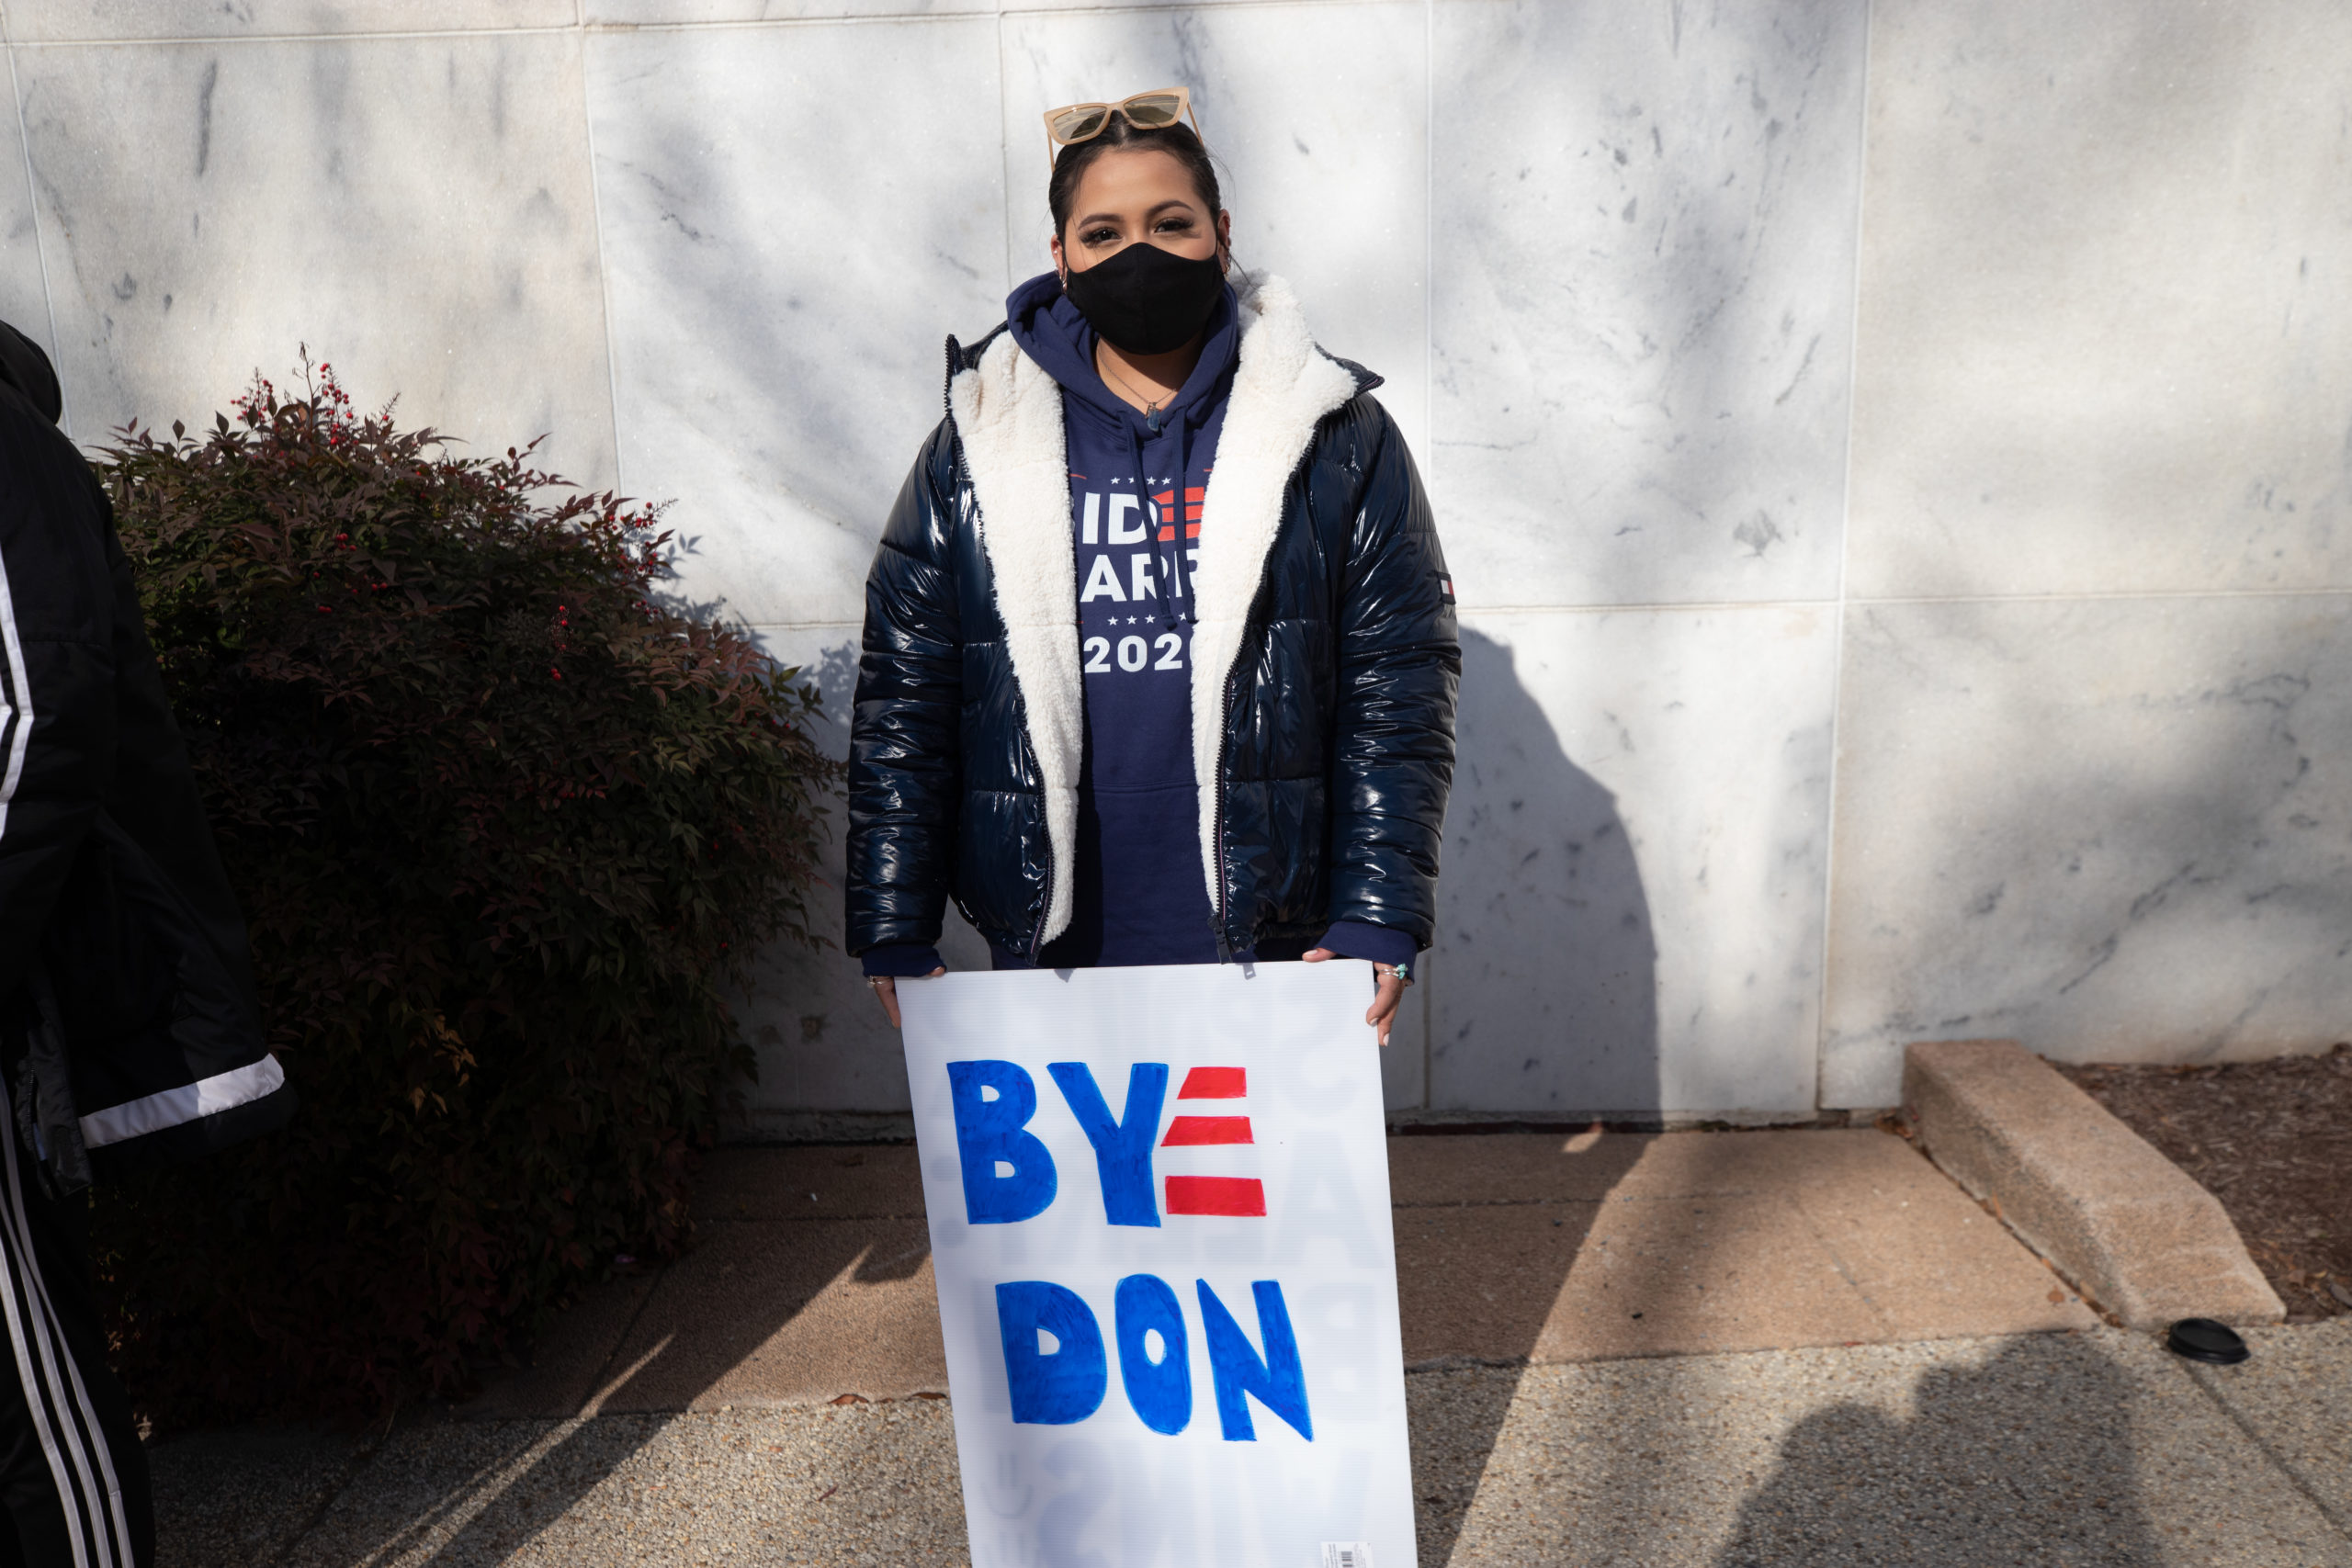 Kenia Viteria said that she watched the inauguration virtually but wanted to walk around to show her support for President Joe Biden in Washington, D.C. on Jan. 20, 2021. (Kaylee Greenlee - Daily Caller News Foundation)